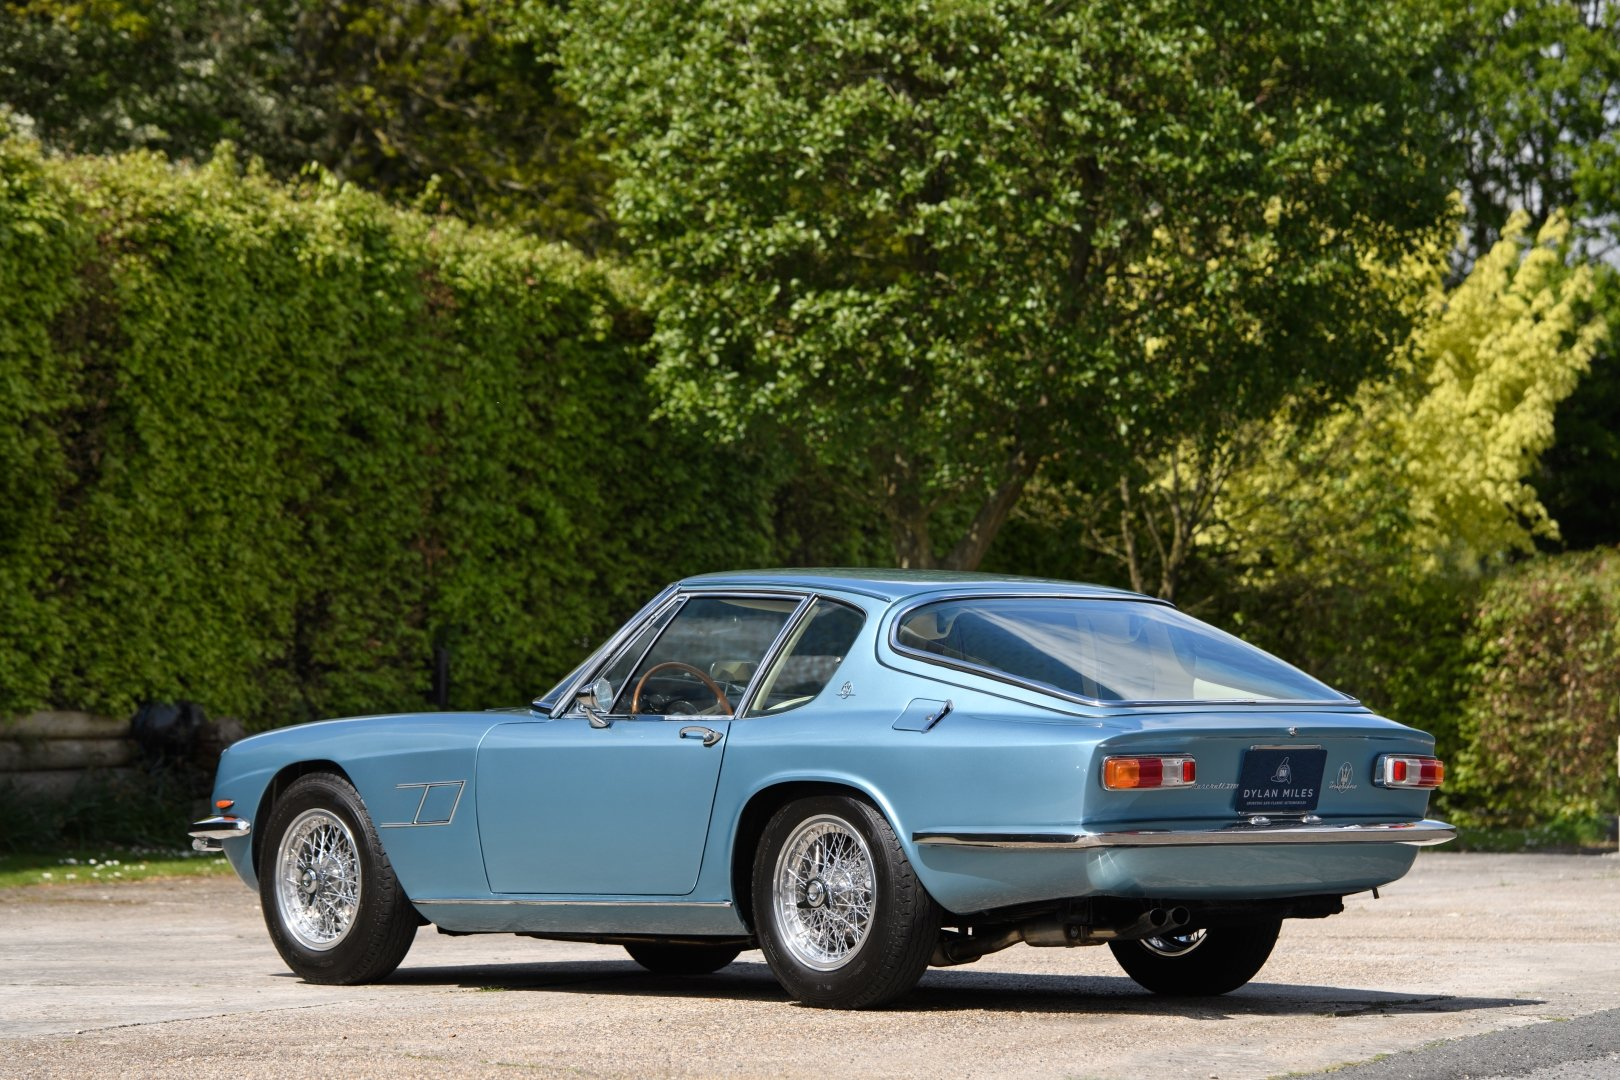 1965 Maserati Mistral 3700 Coupe  For Sale (picture 2 of 6)